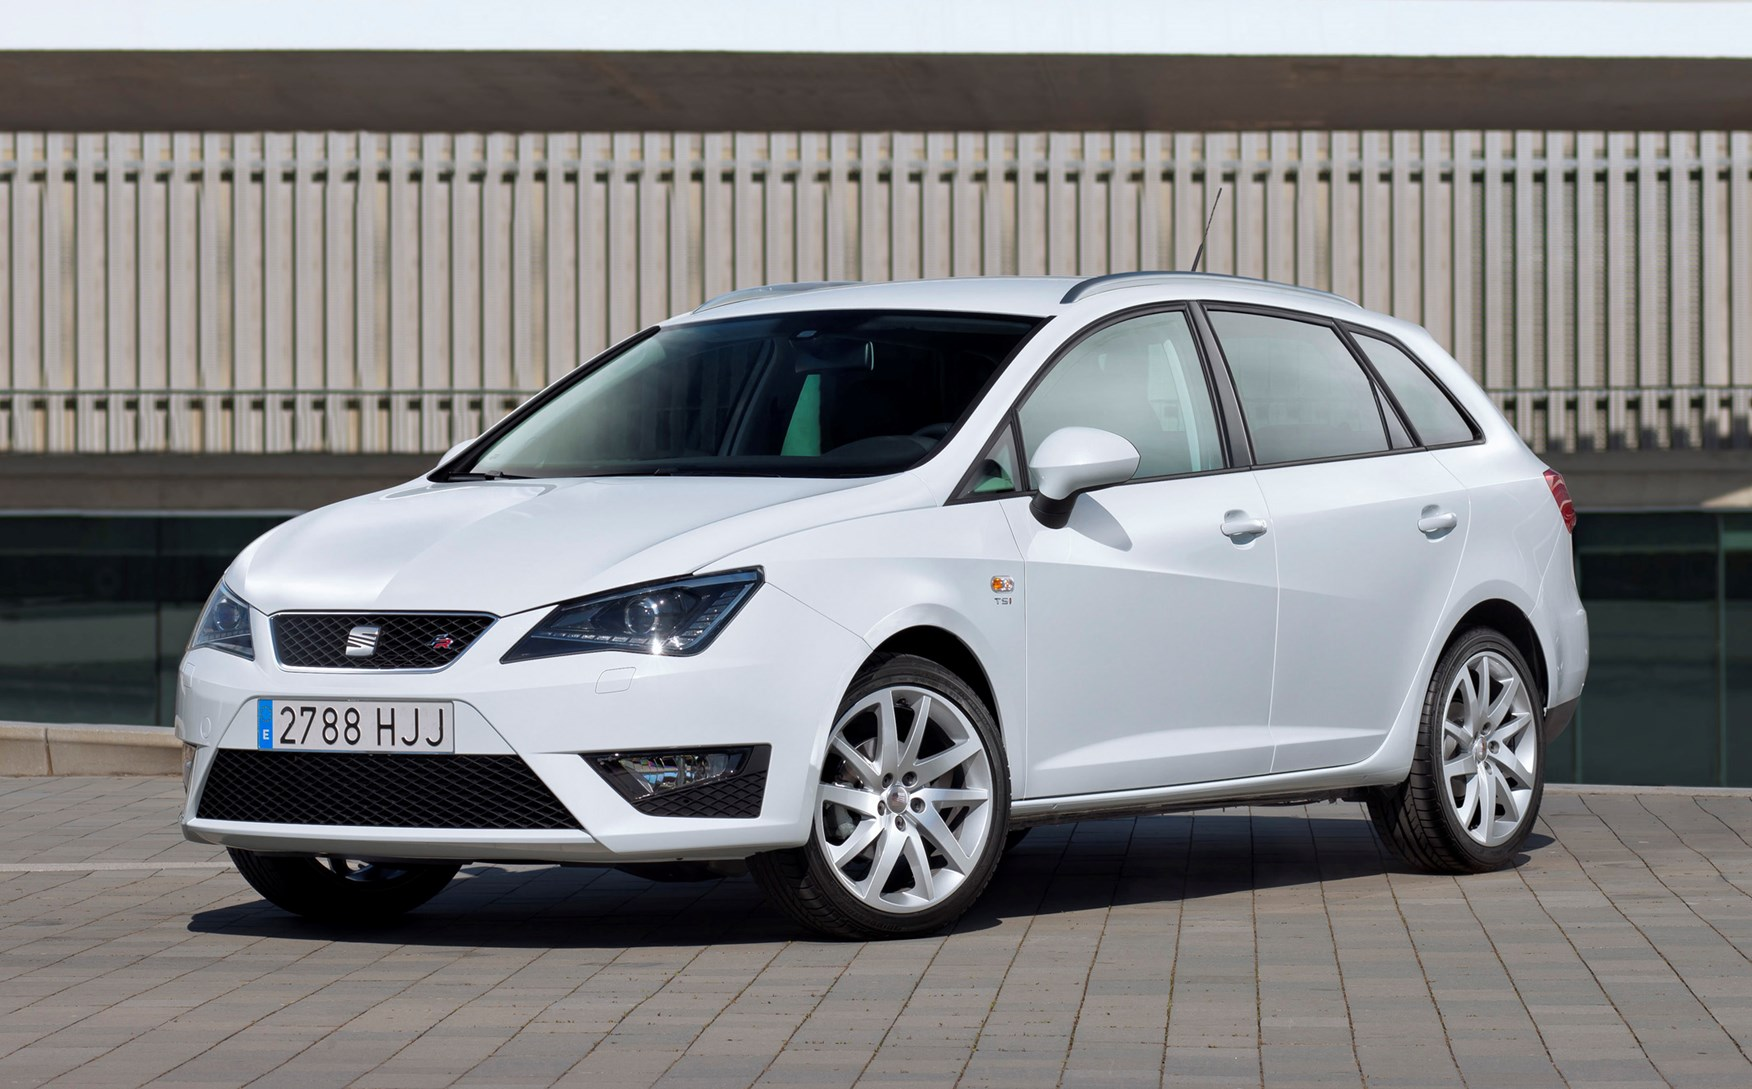 seat ibiza st review 2010 2017 parkers. Black Bedroom Furniture Sets. Home Design Ideas